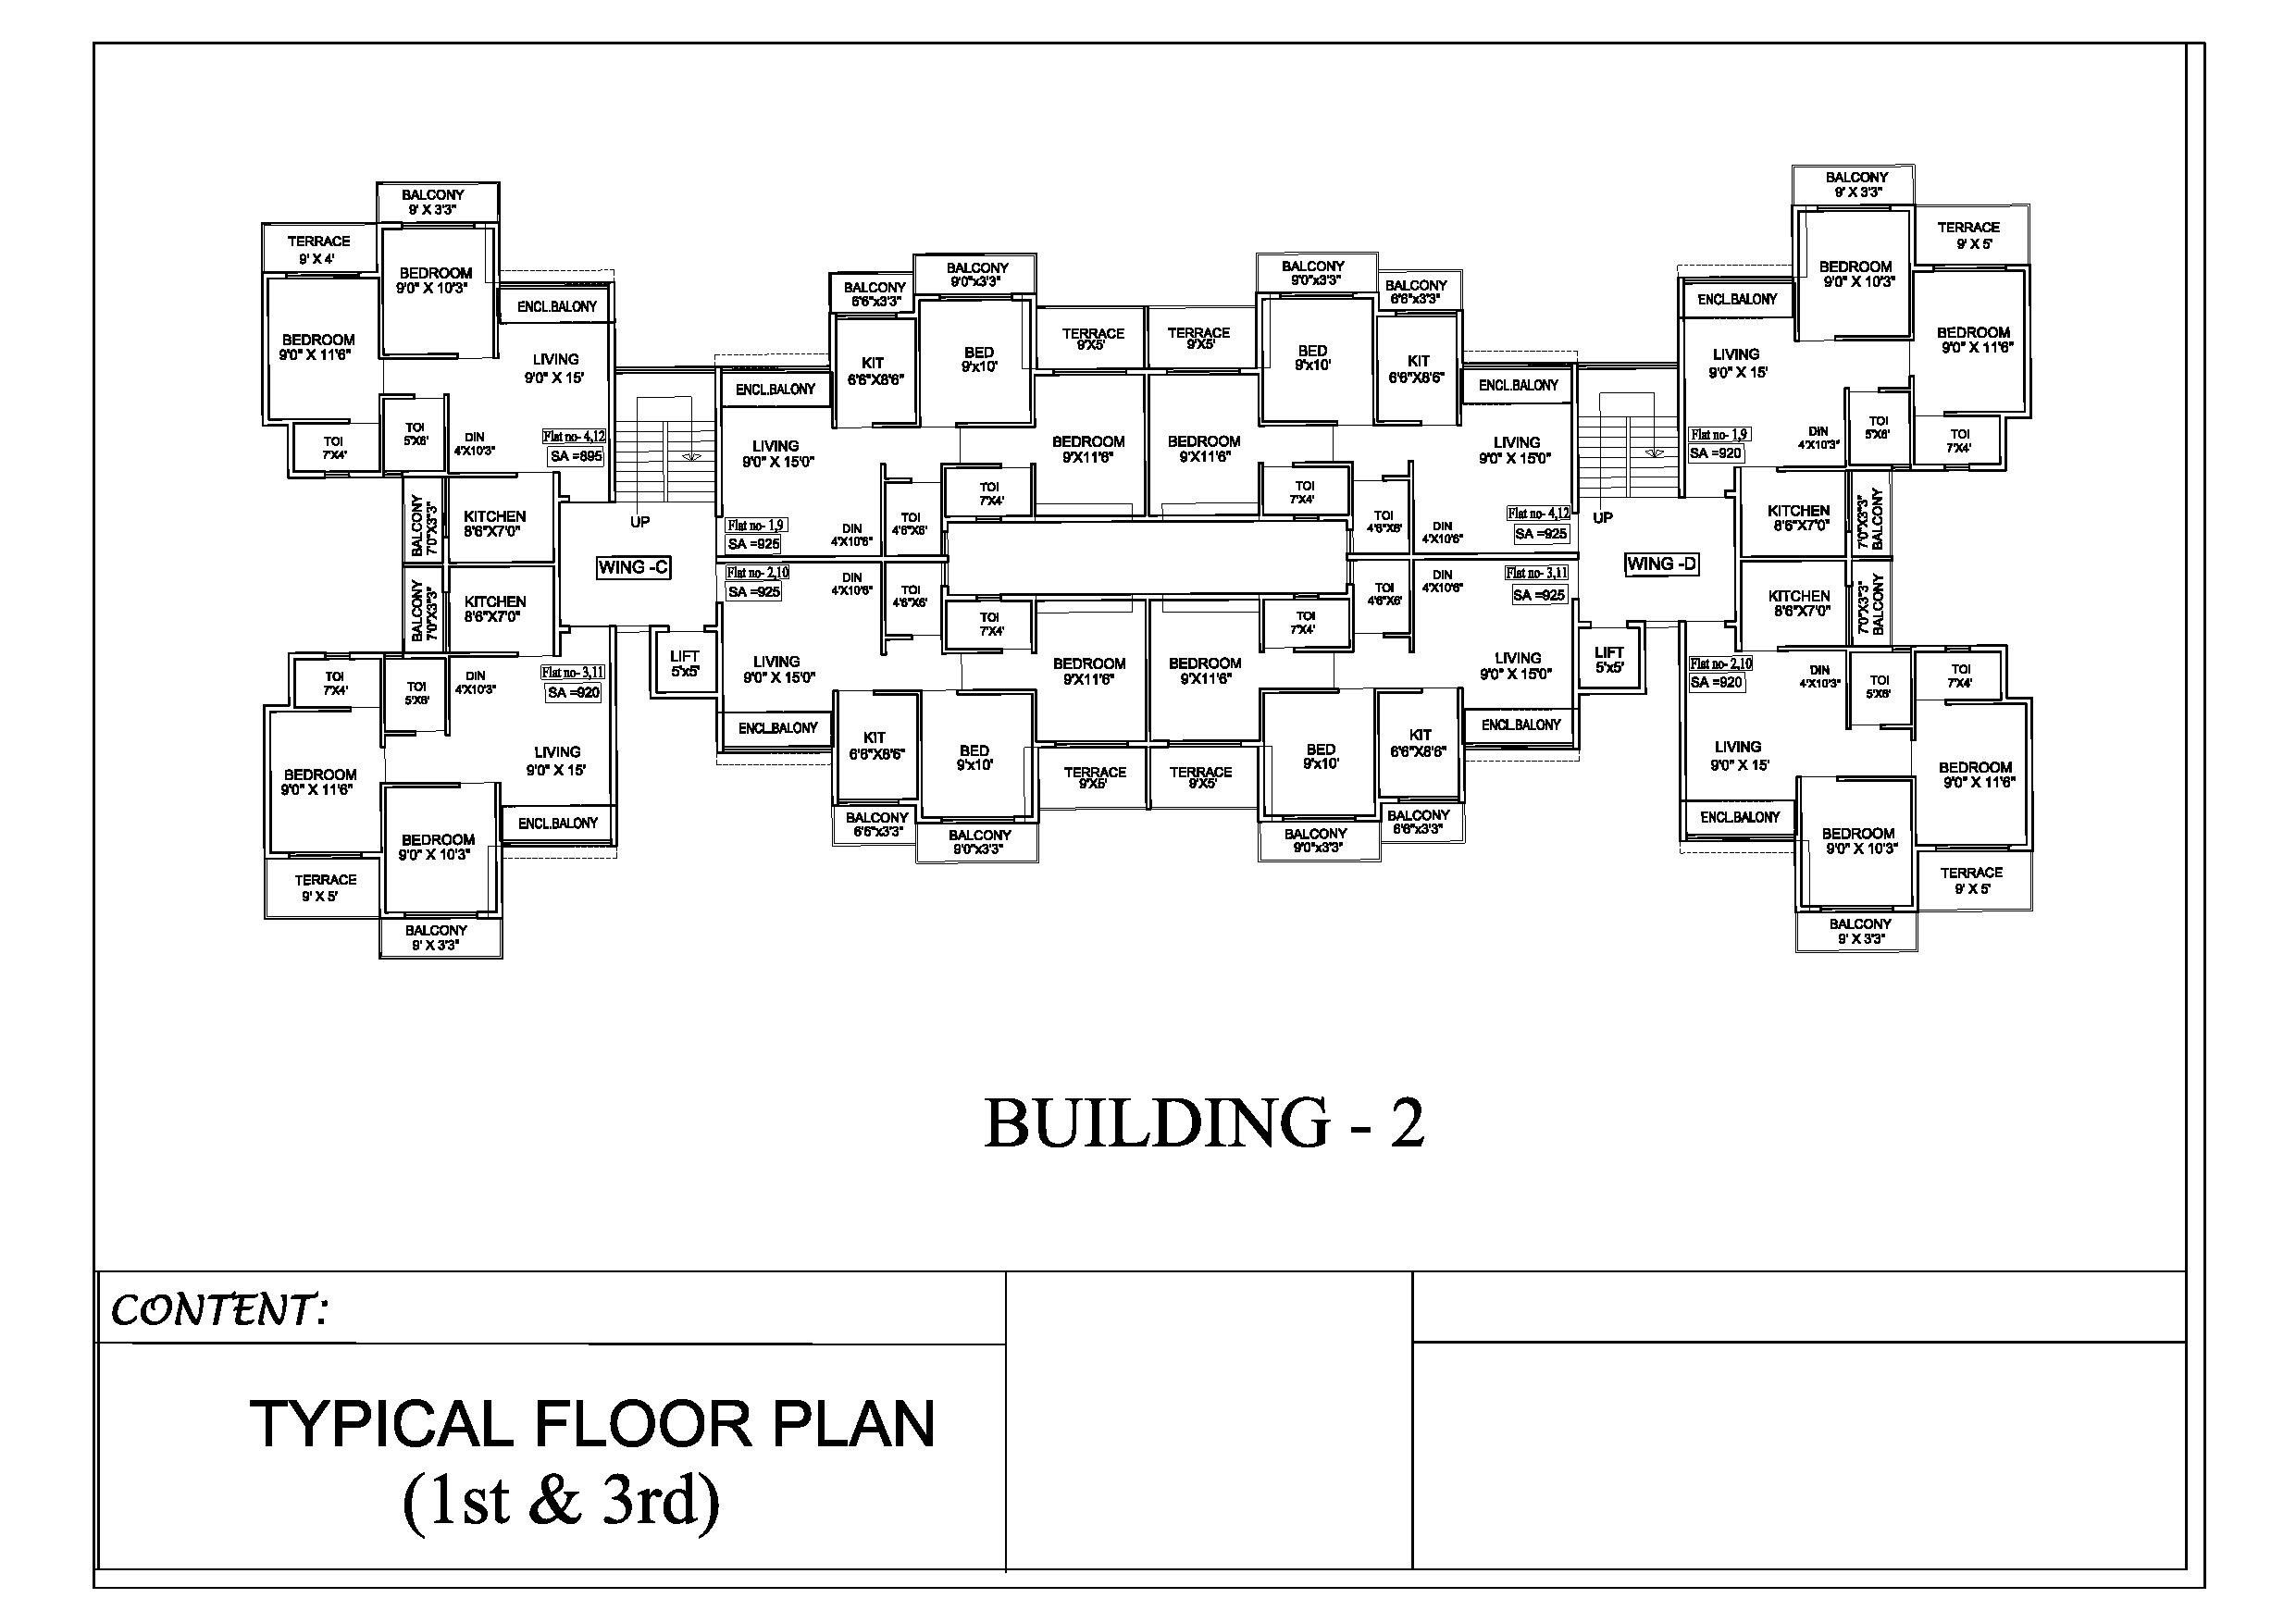 Typical Floor Plan A 1-3 Bldg. 2.jpg